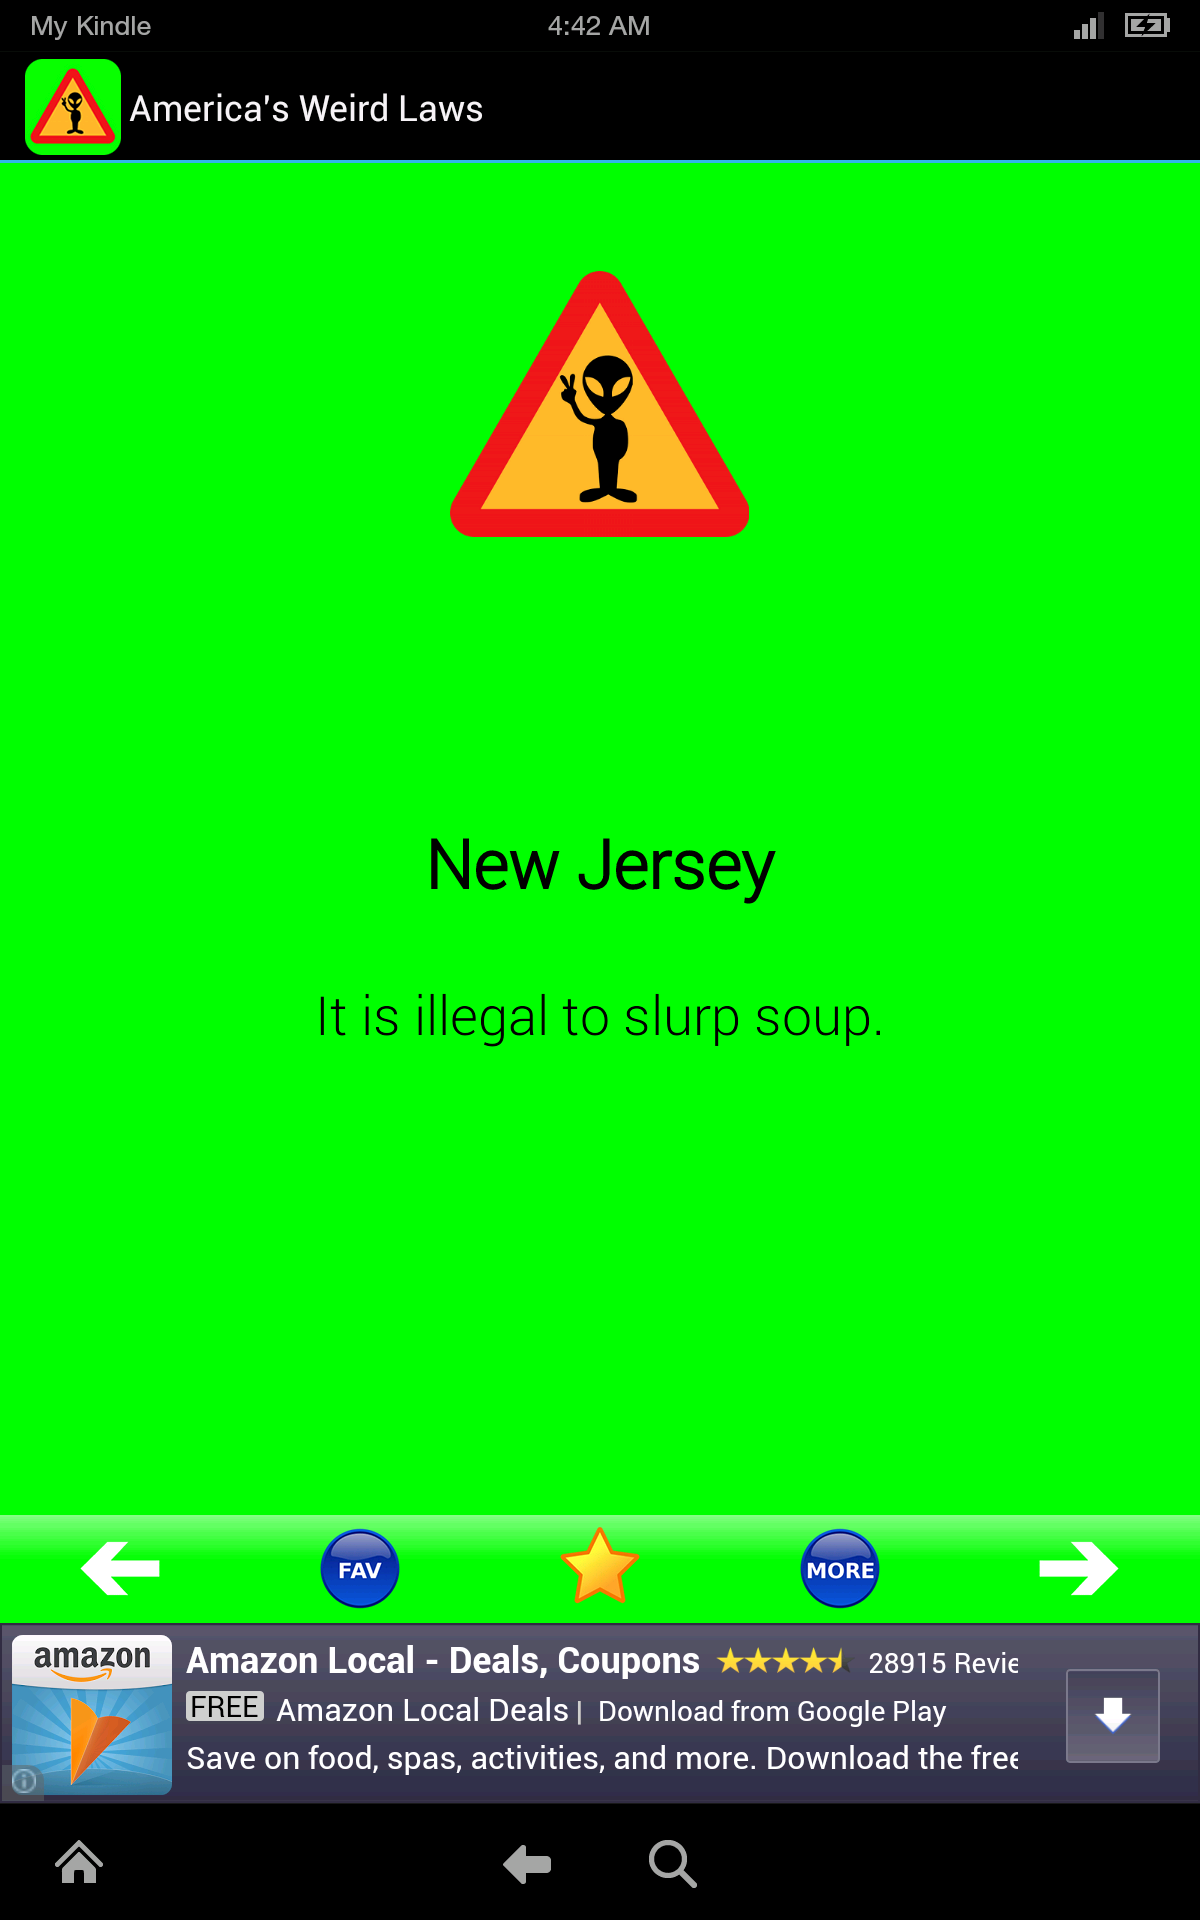 strange laws weird america funny dumb stupid states united facts bizarre app legal jokes games dictionary general laugh adults